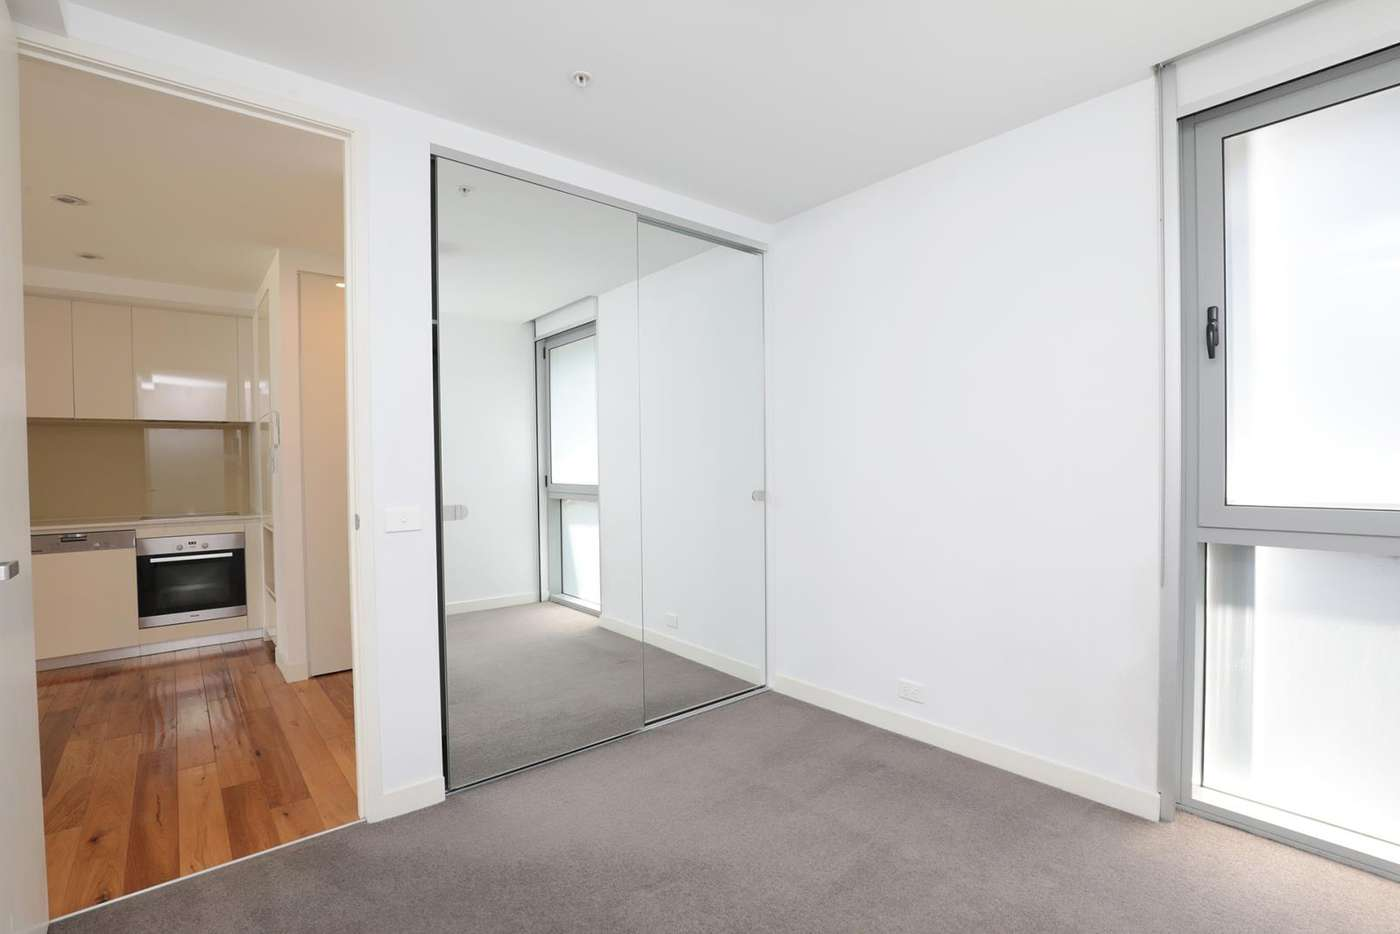 Fifth view of Homely apartment listing, 128/70 Nott Street, Port Melbourne VIC 3207